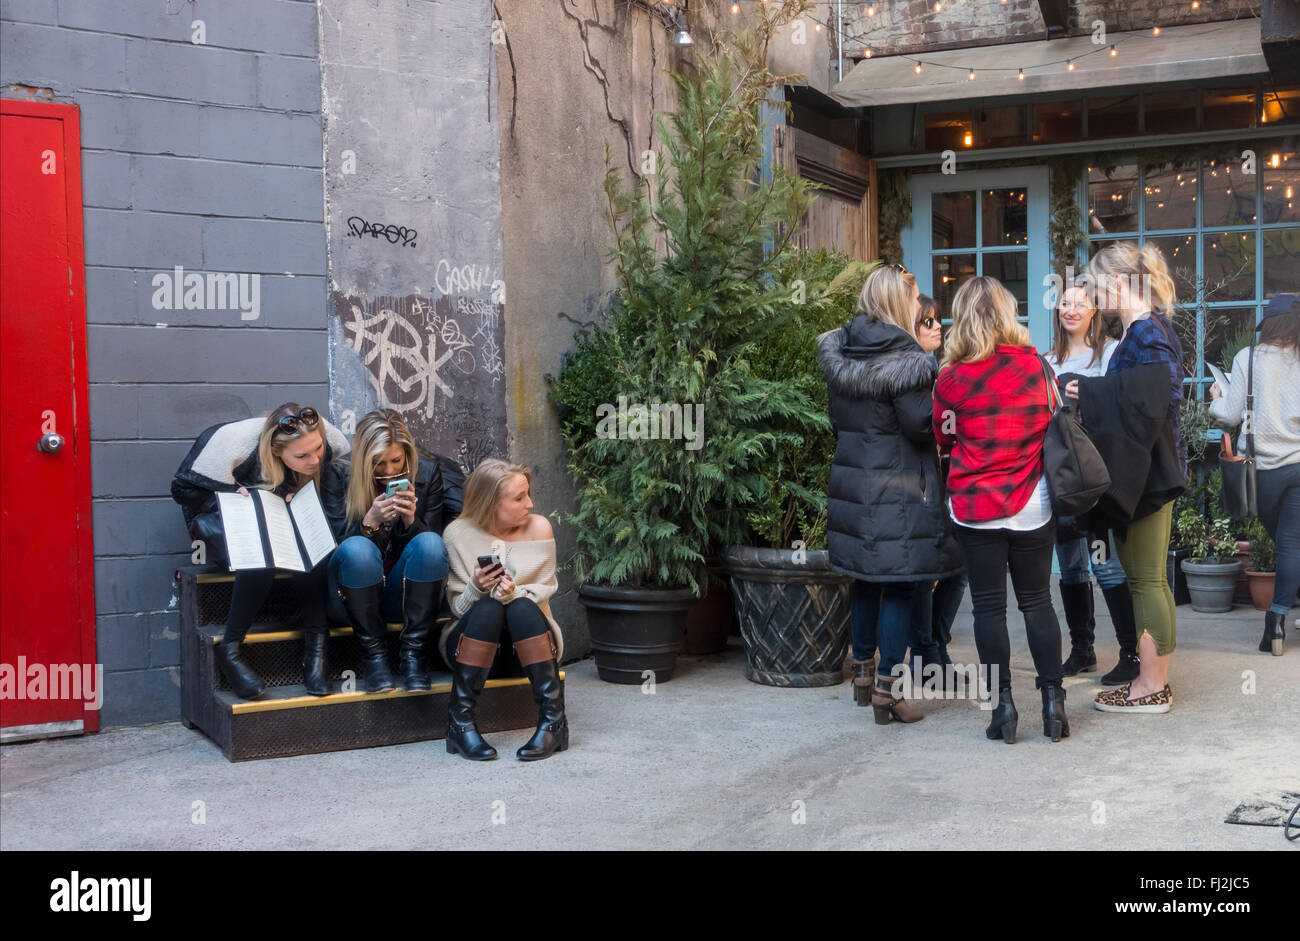 Groups of young women waiting for a table for brunch at Freemans Restaurant in Freemans Alley in New York City - Stock Image